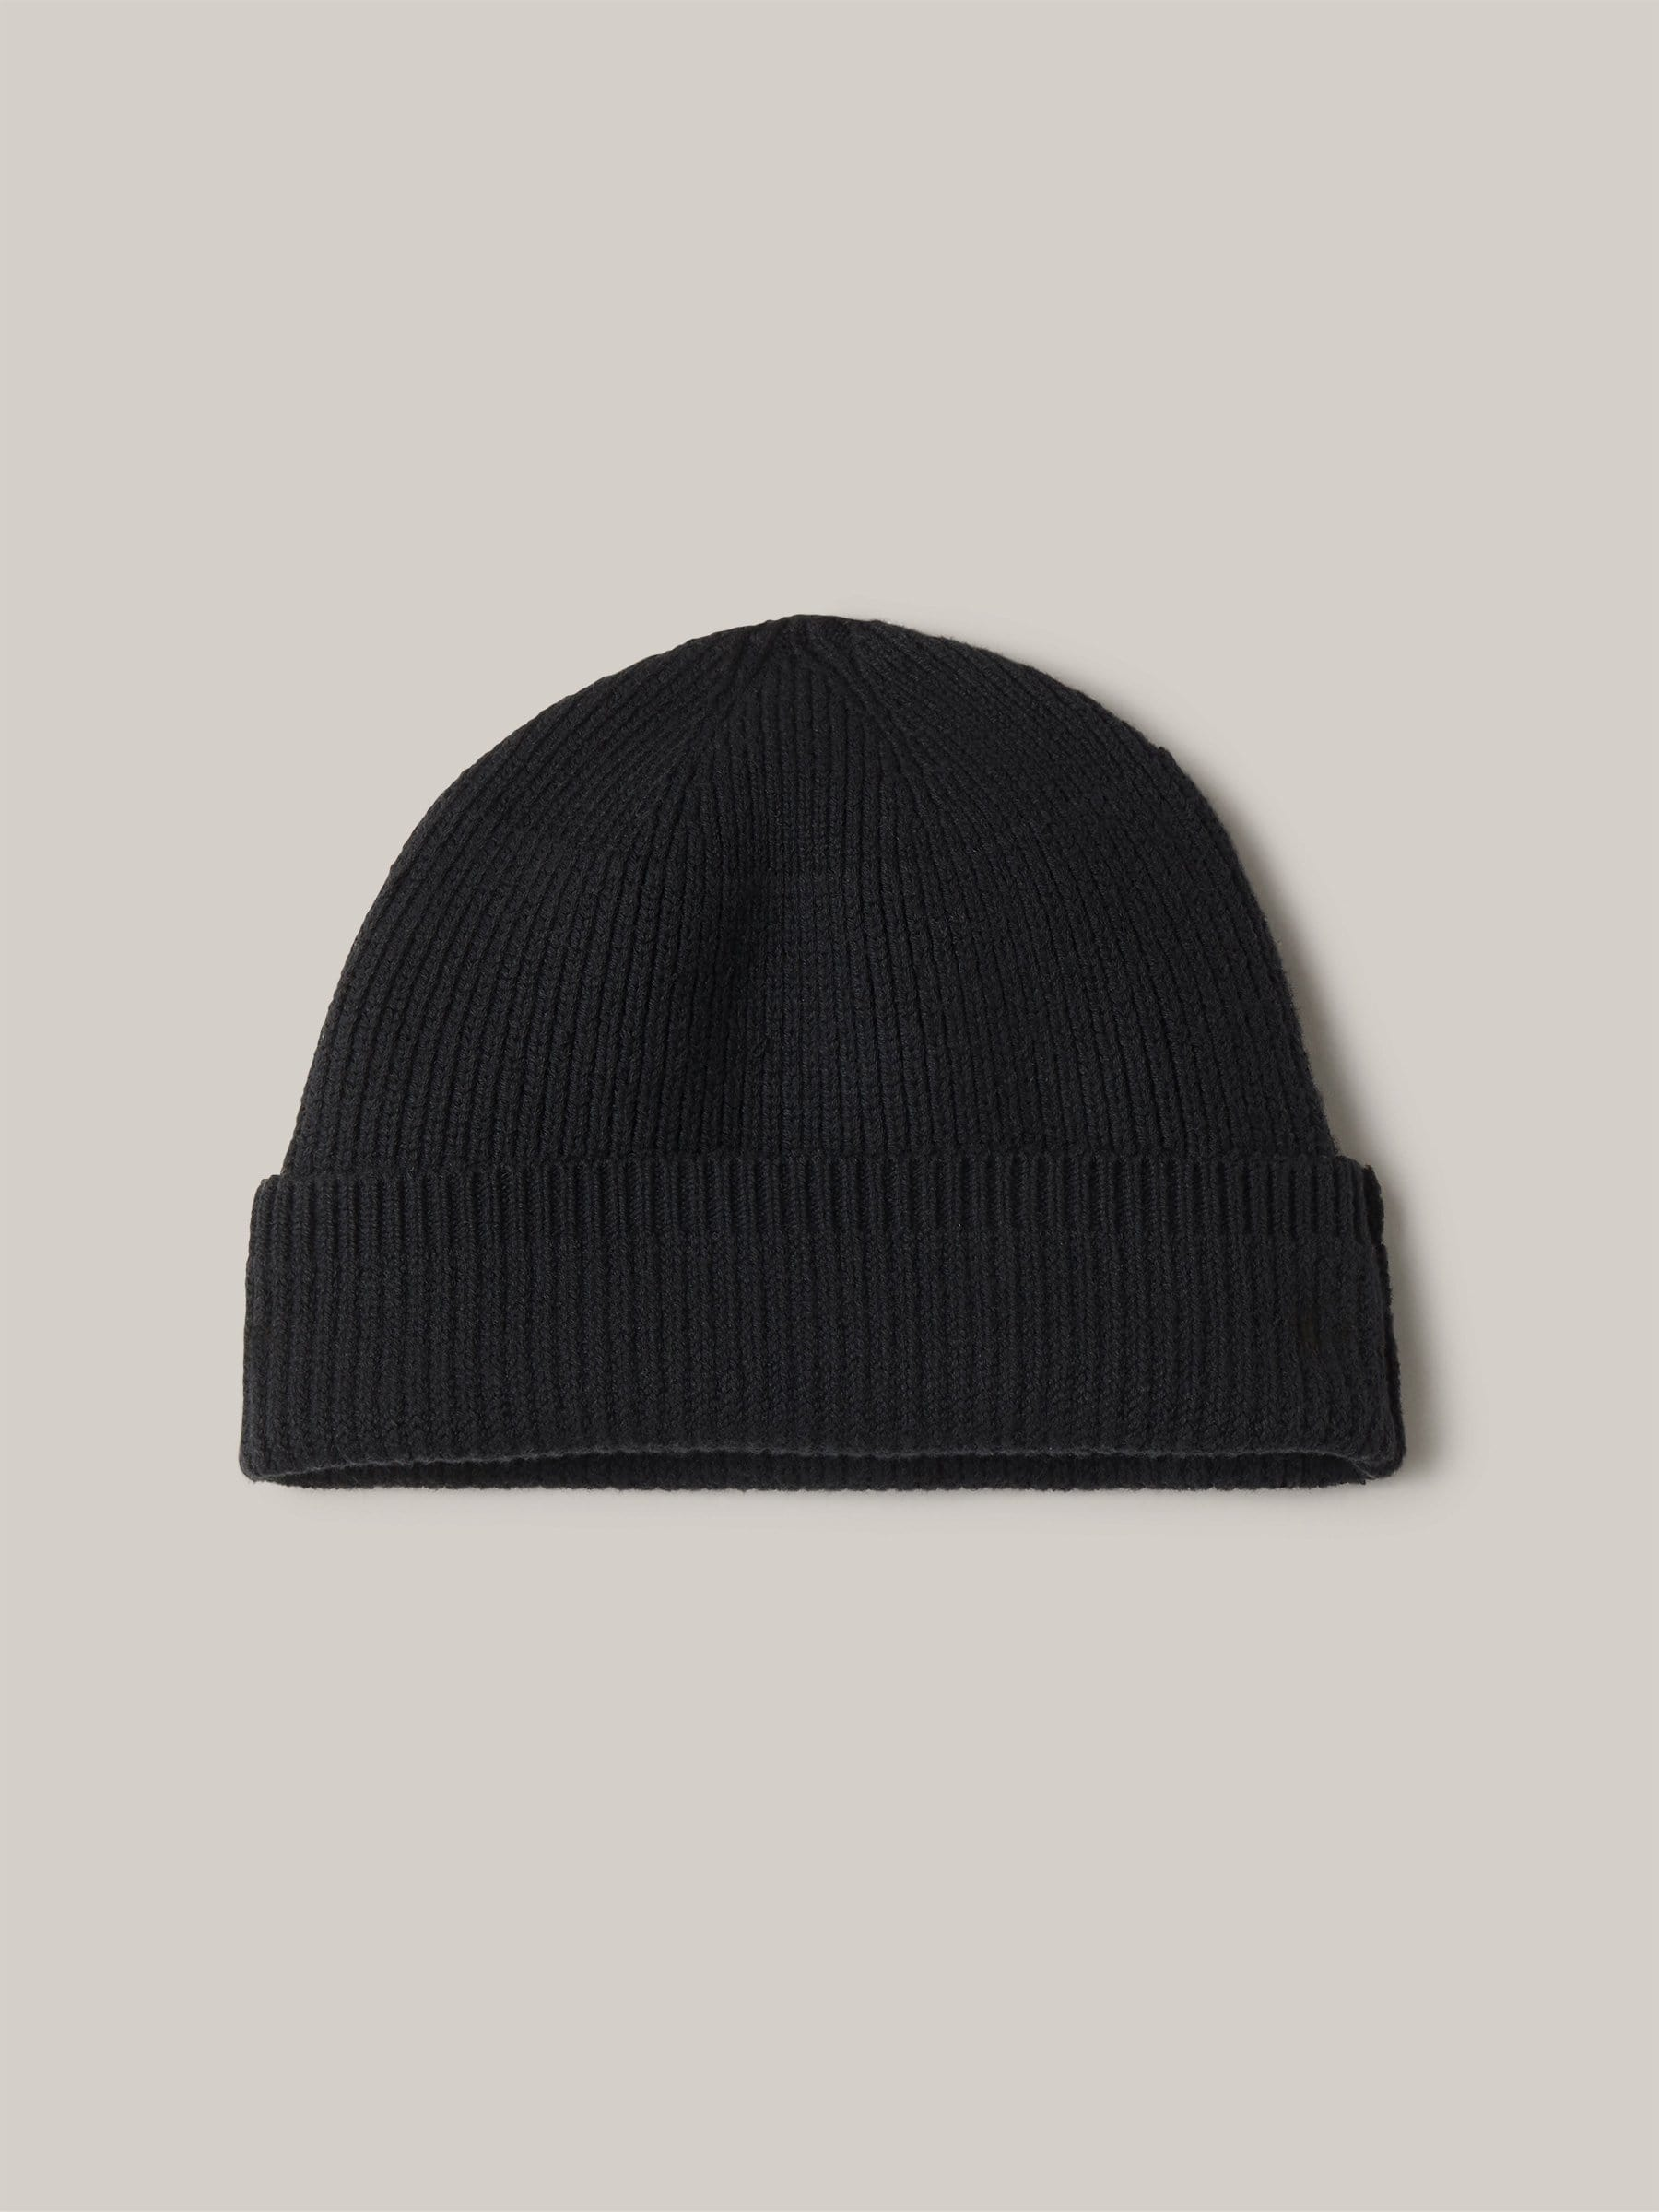 Buck Mason - Black Cotton Rib-Knit Watch Cap